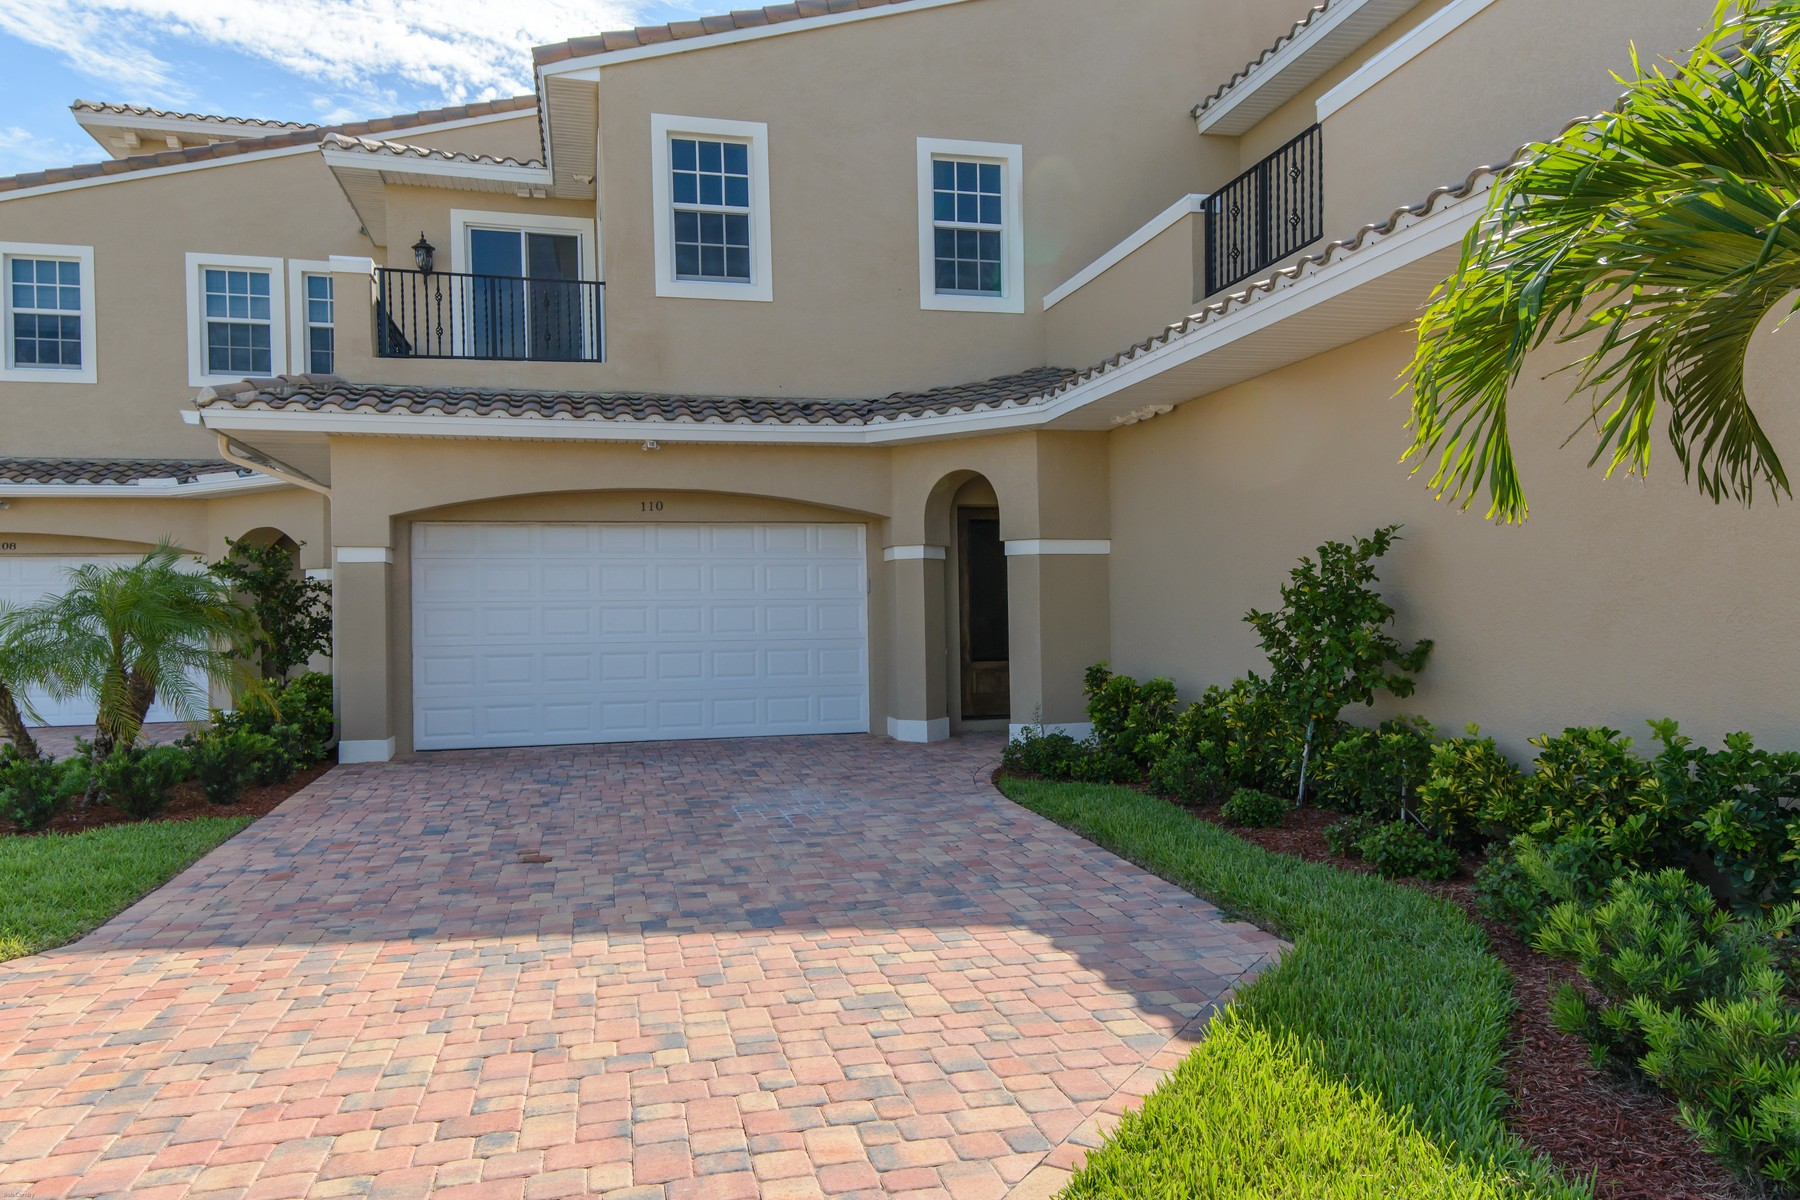 townhouses for Sale at Beautiful Town-home with Soaring Ceilings Overlooking Pond & Fountain 110 Mediterranean Way Indian Harbour Beach, Florida 32937 United States